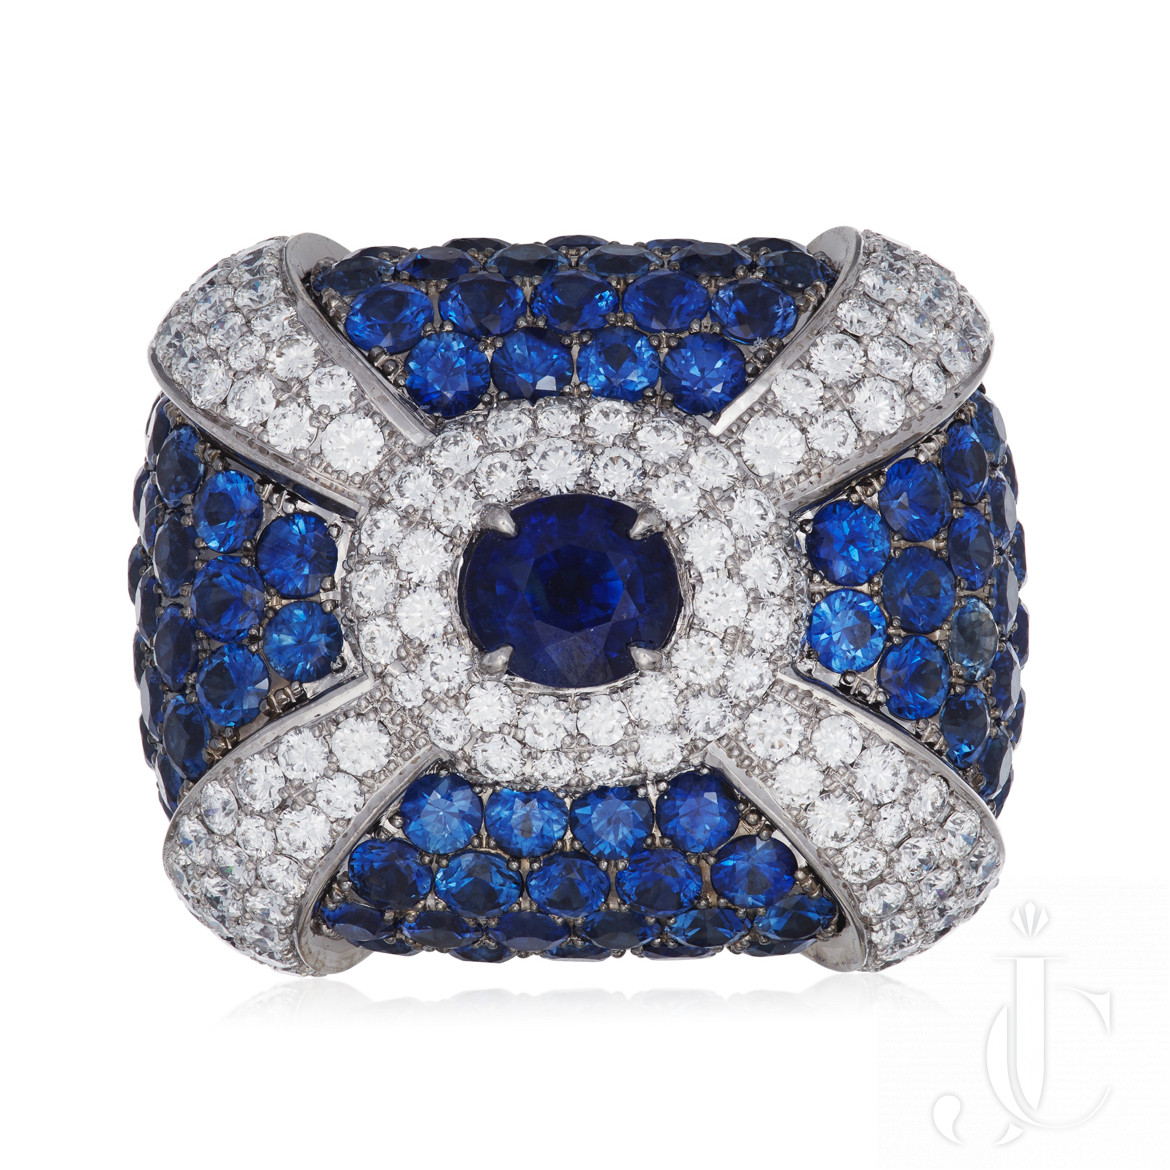 Lev Leviev Gorgeous Sapphire Diamond Ring in 18 KT white gold